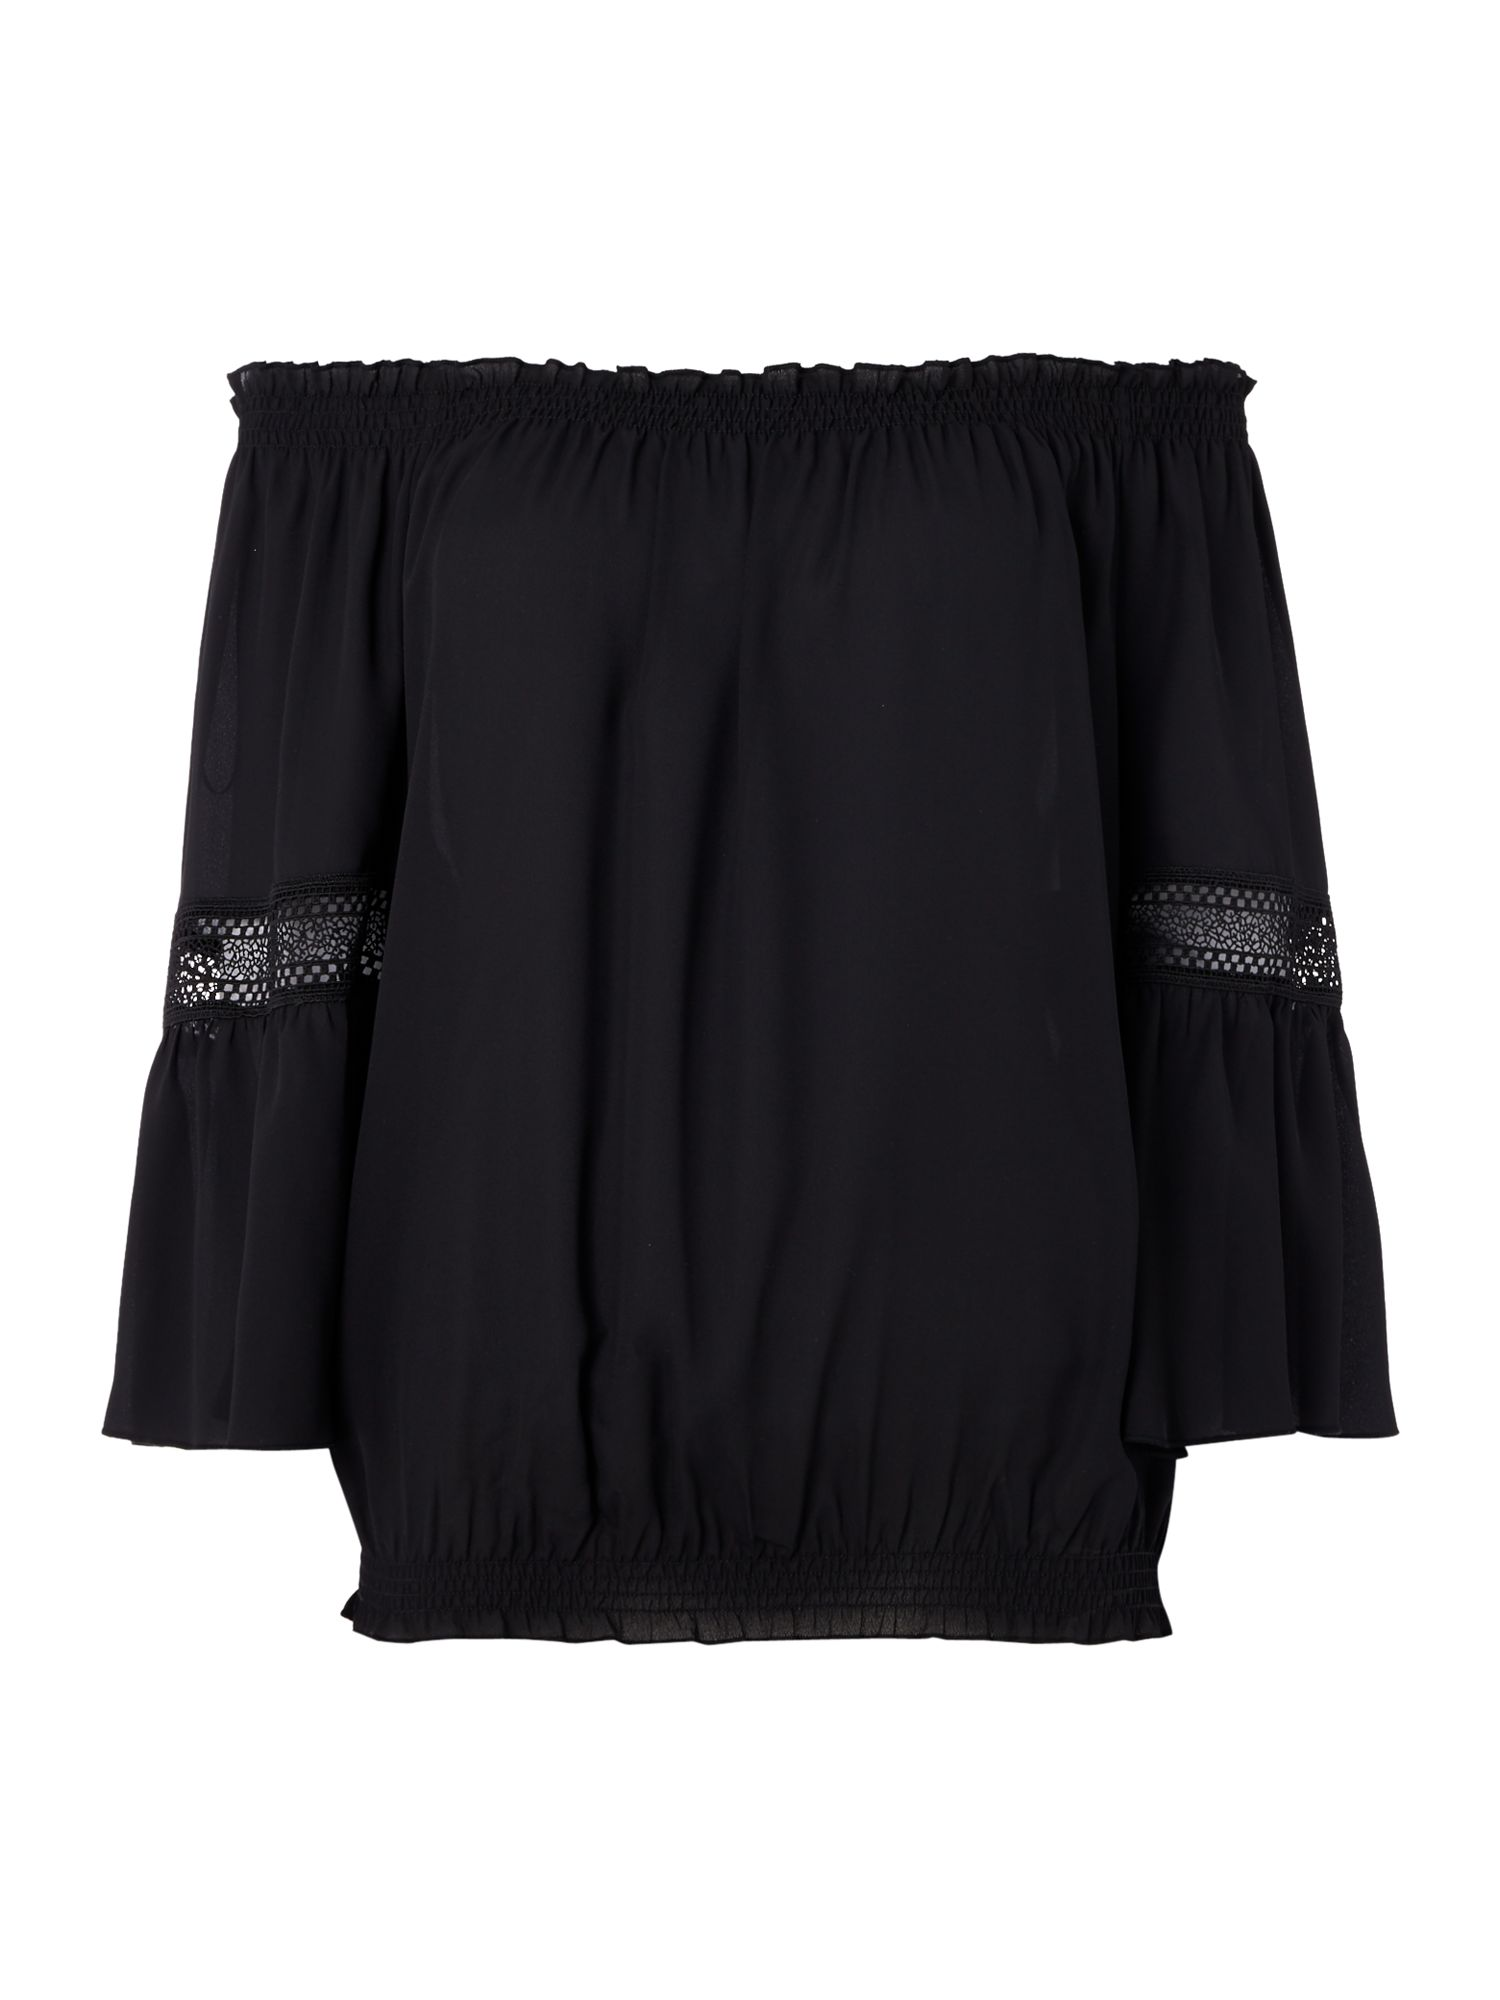 Biba Off the shoulder lace detail blouse, Black